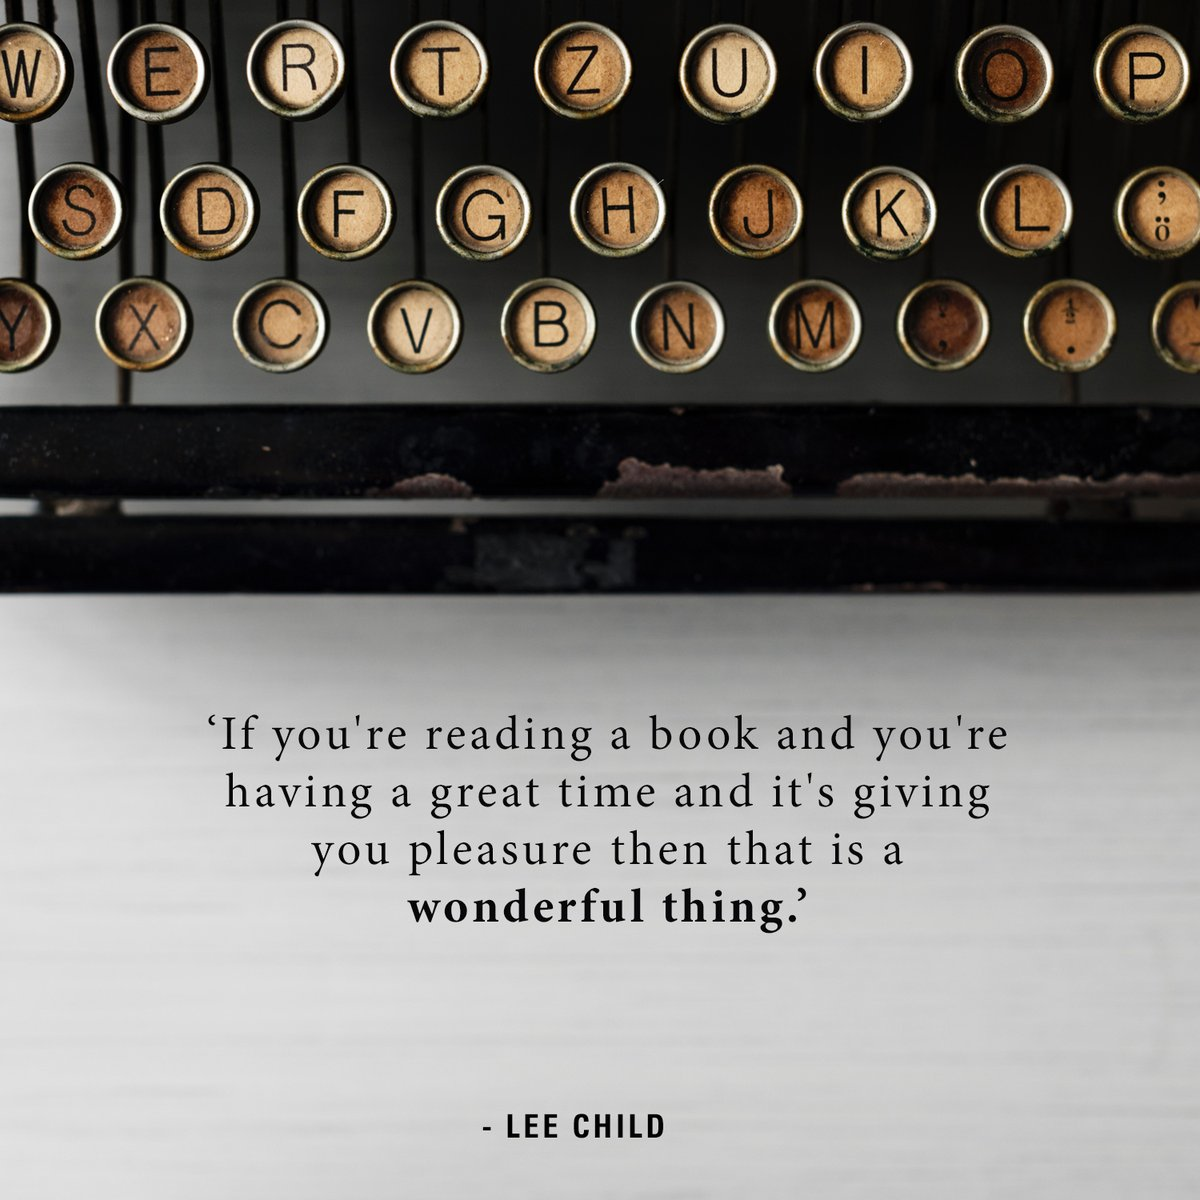 If youre reading a book and youre having a great time and its giving you pleasure then that is a wonderful thing. - Lee Child